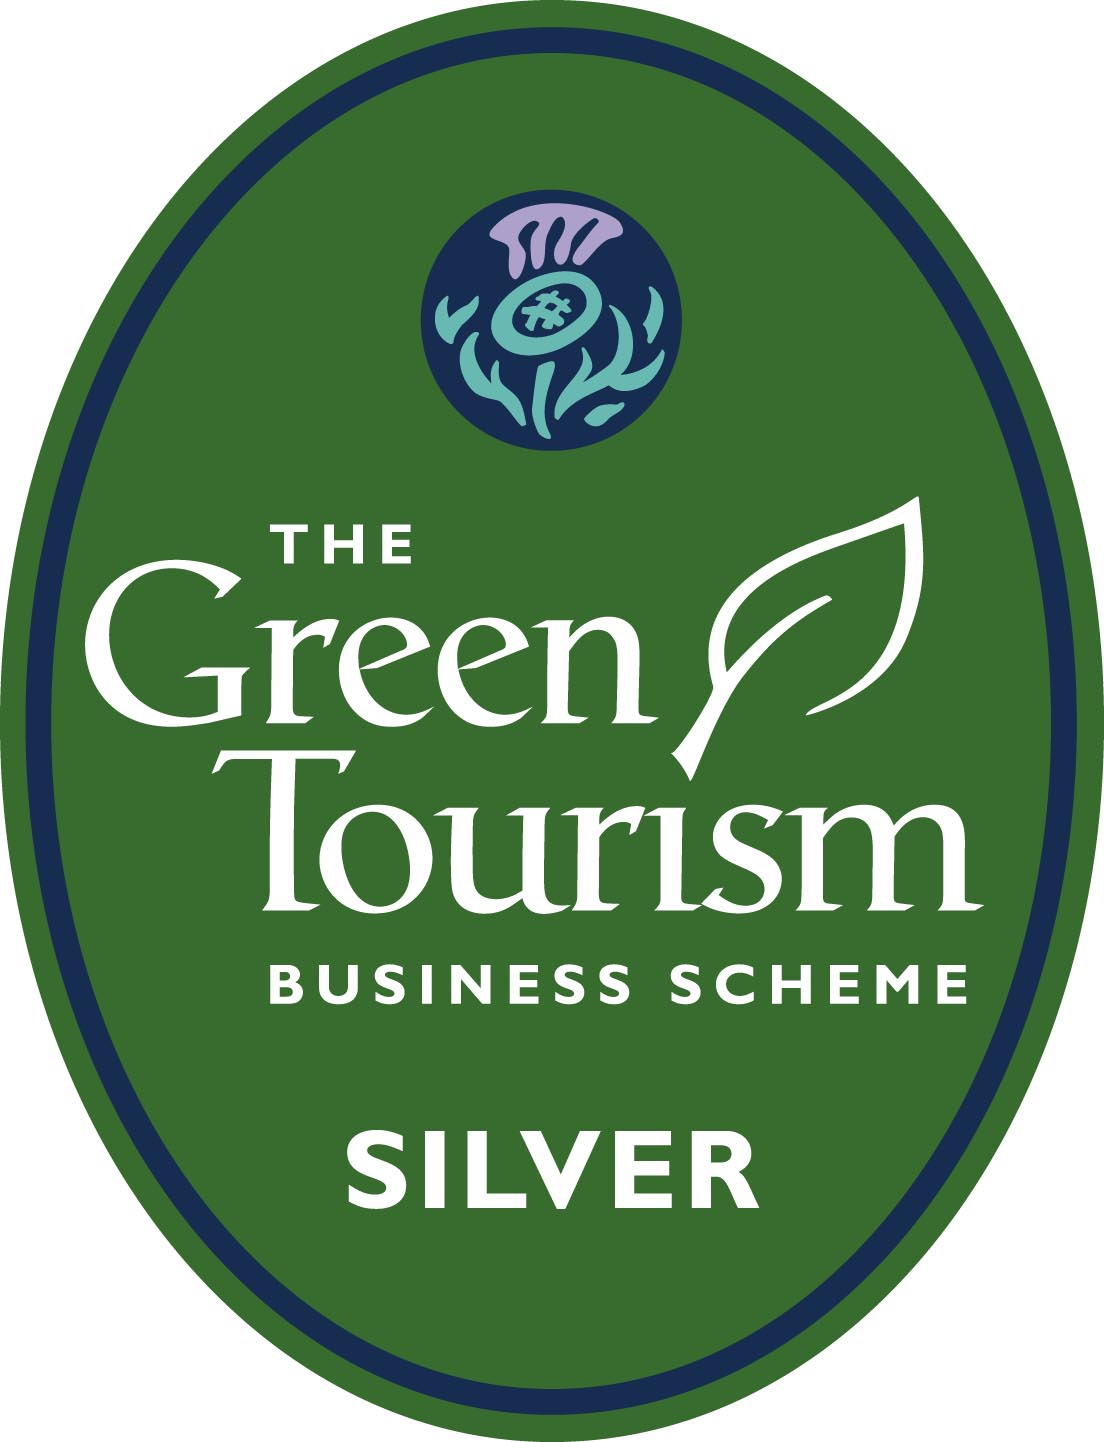 Green Tourism Award plaque